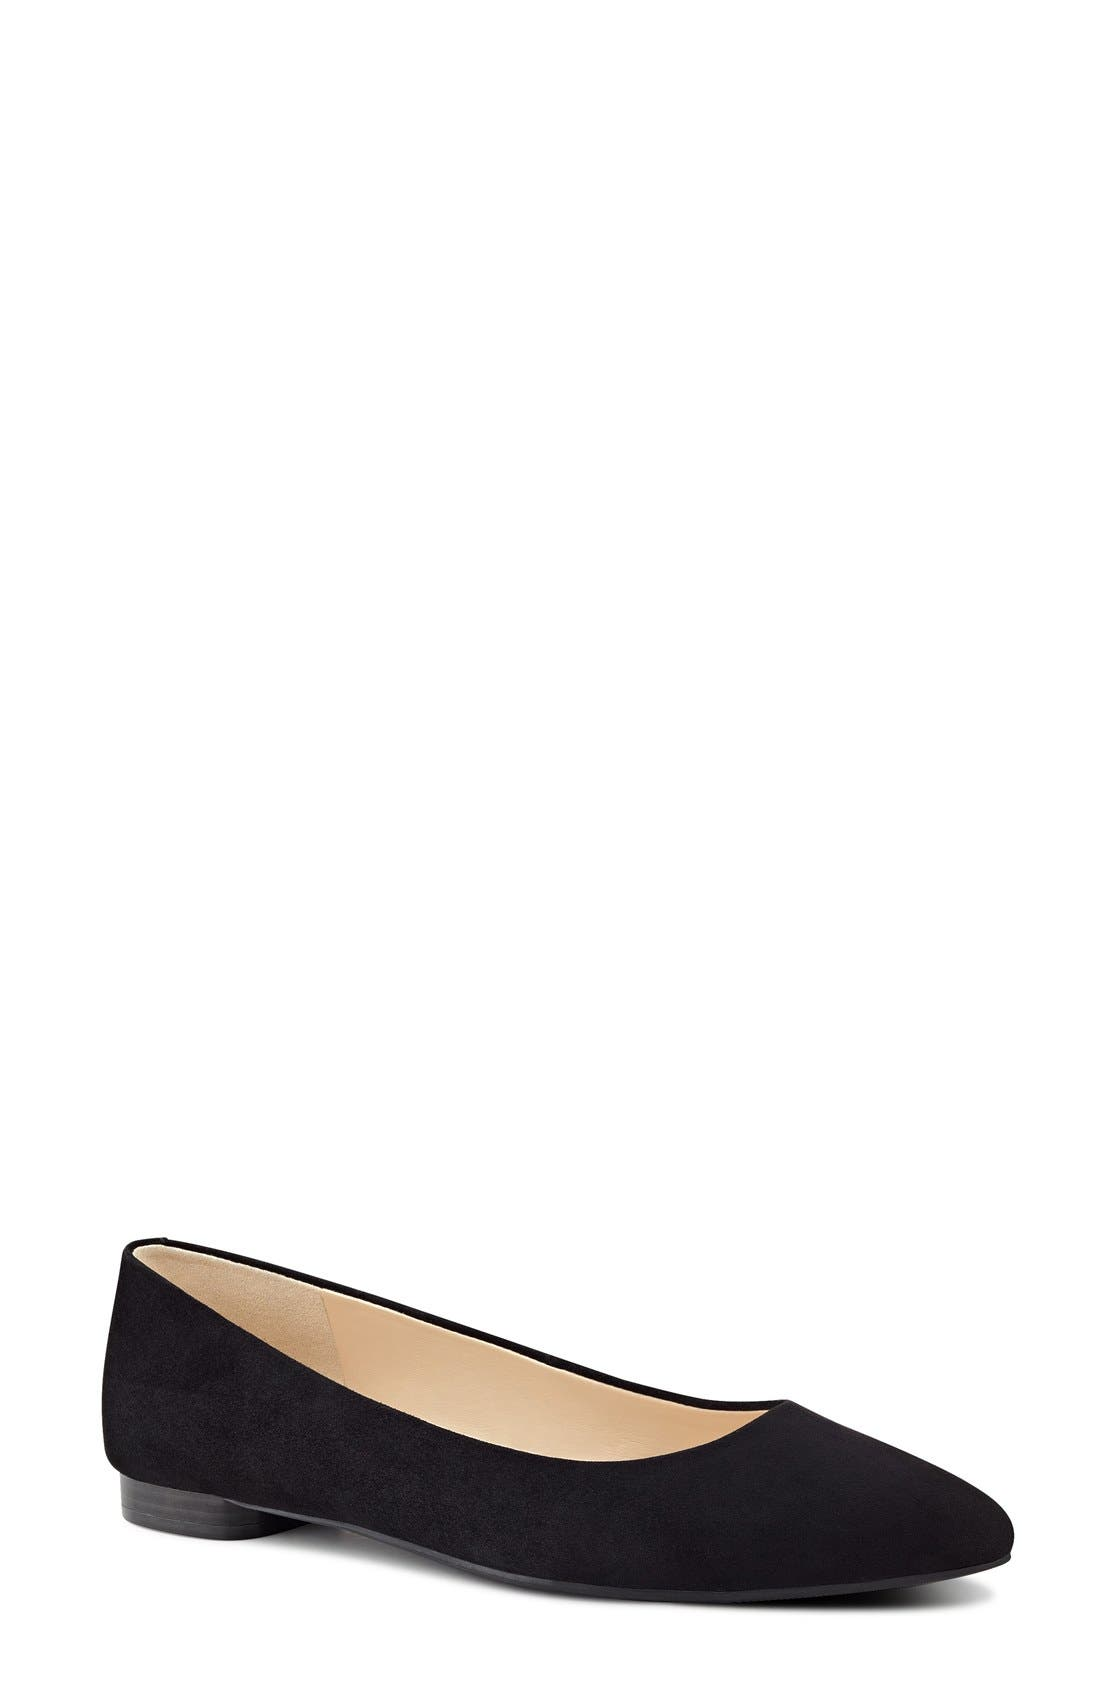 Alternate Image 1 Selected - Nine West 'Onlee' Pointy Toe Flat (Women)